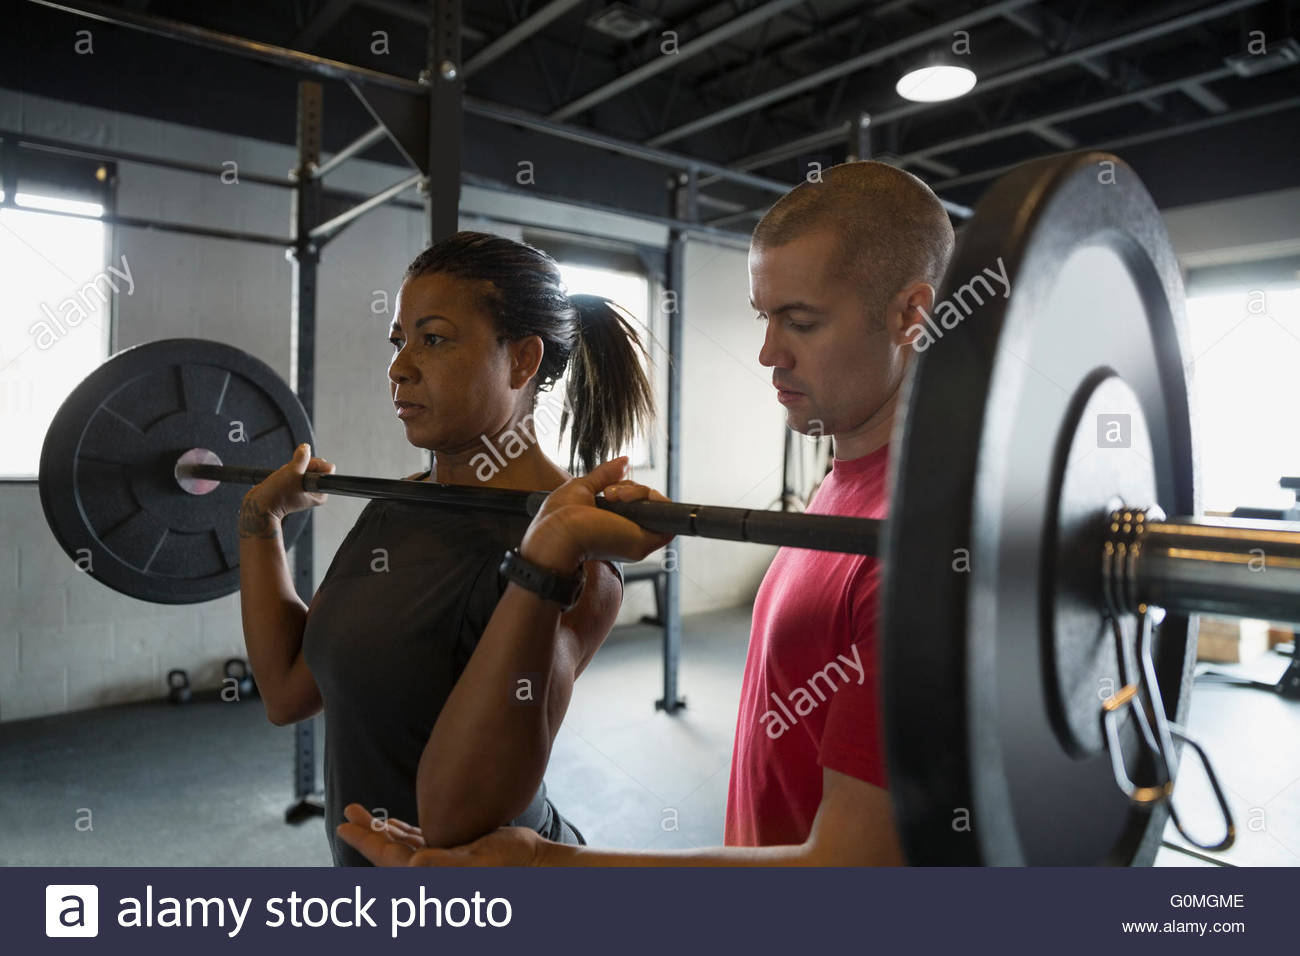 Personal trainer guiding woman weightlifting barbell - Stock Image